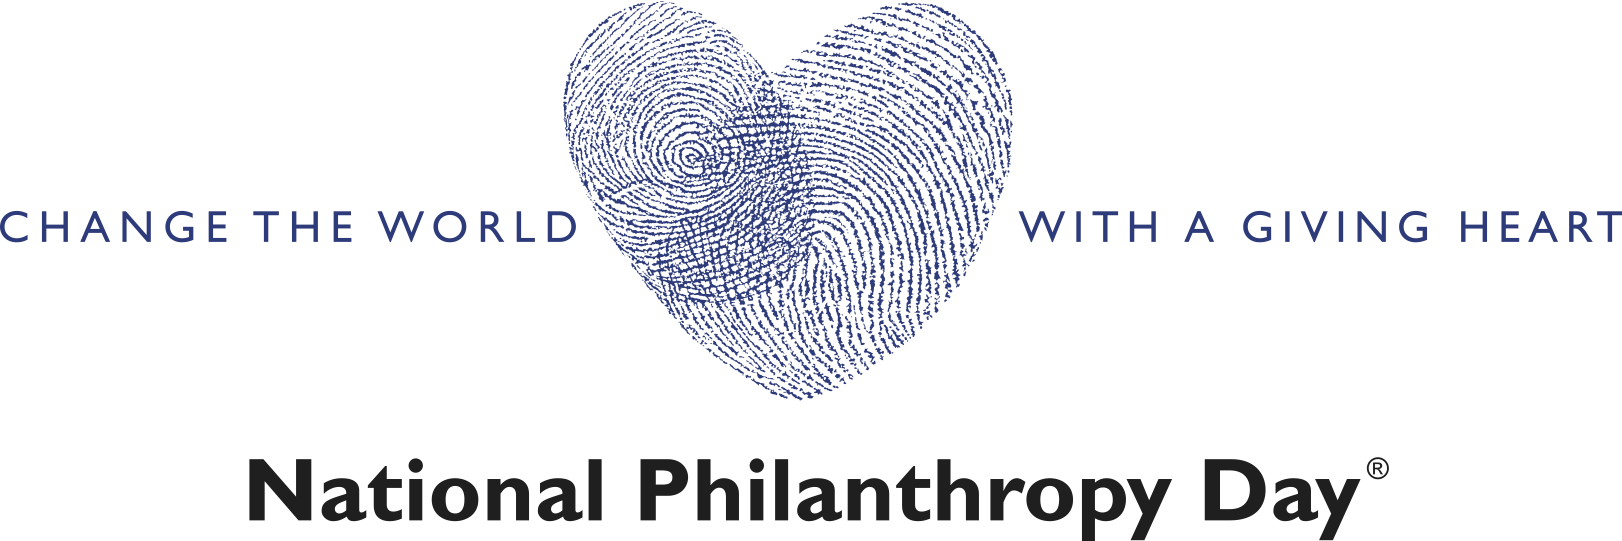 National Philanthropy Day in Canada